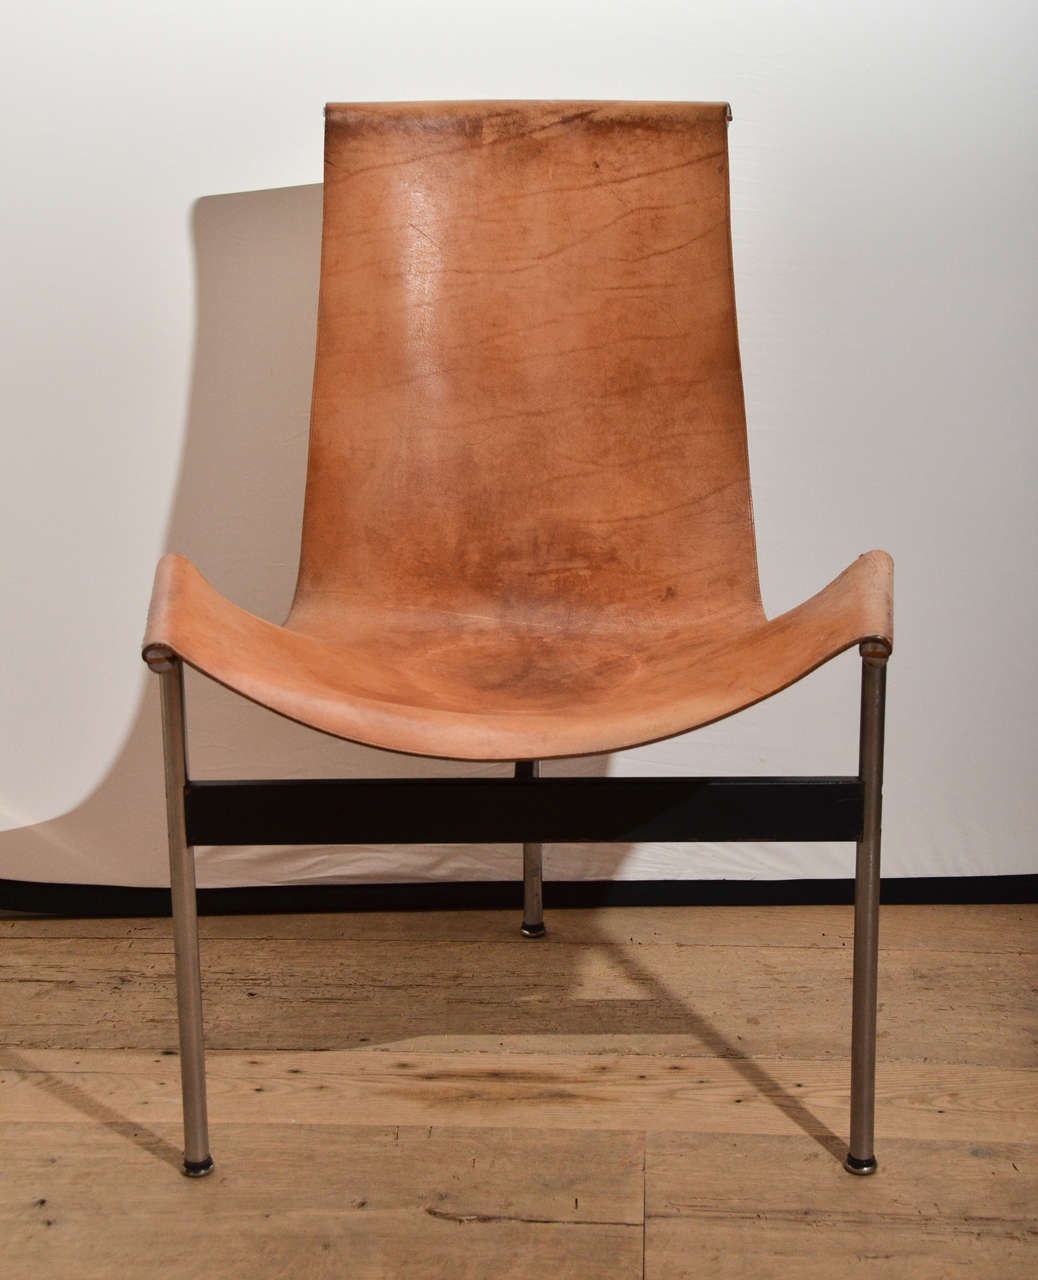 stunning steel chair attacks sun tanning set of four 1960s laverne t chairs by katavolos little